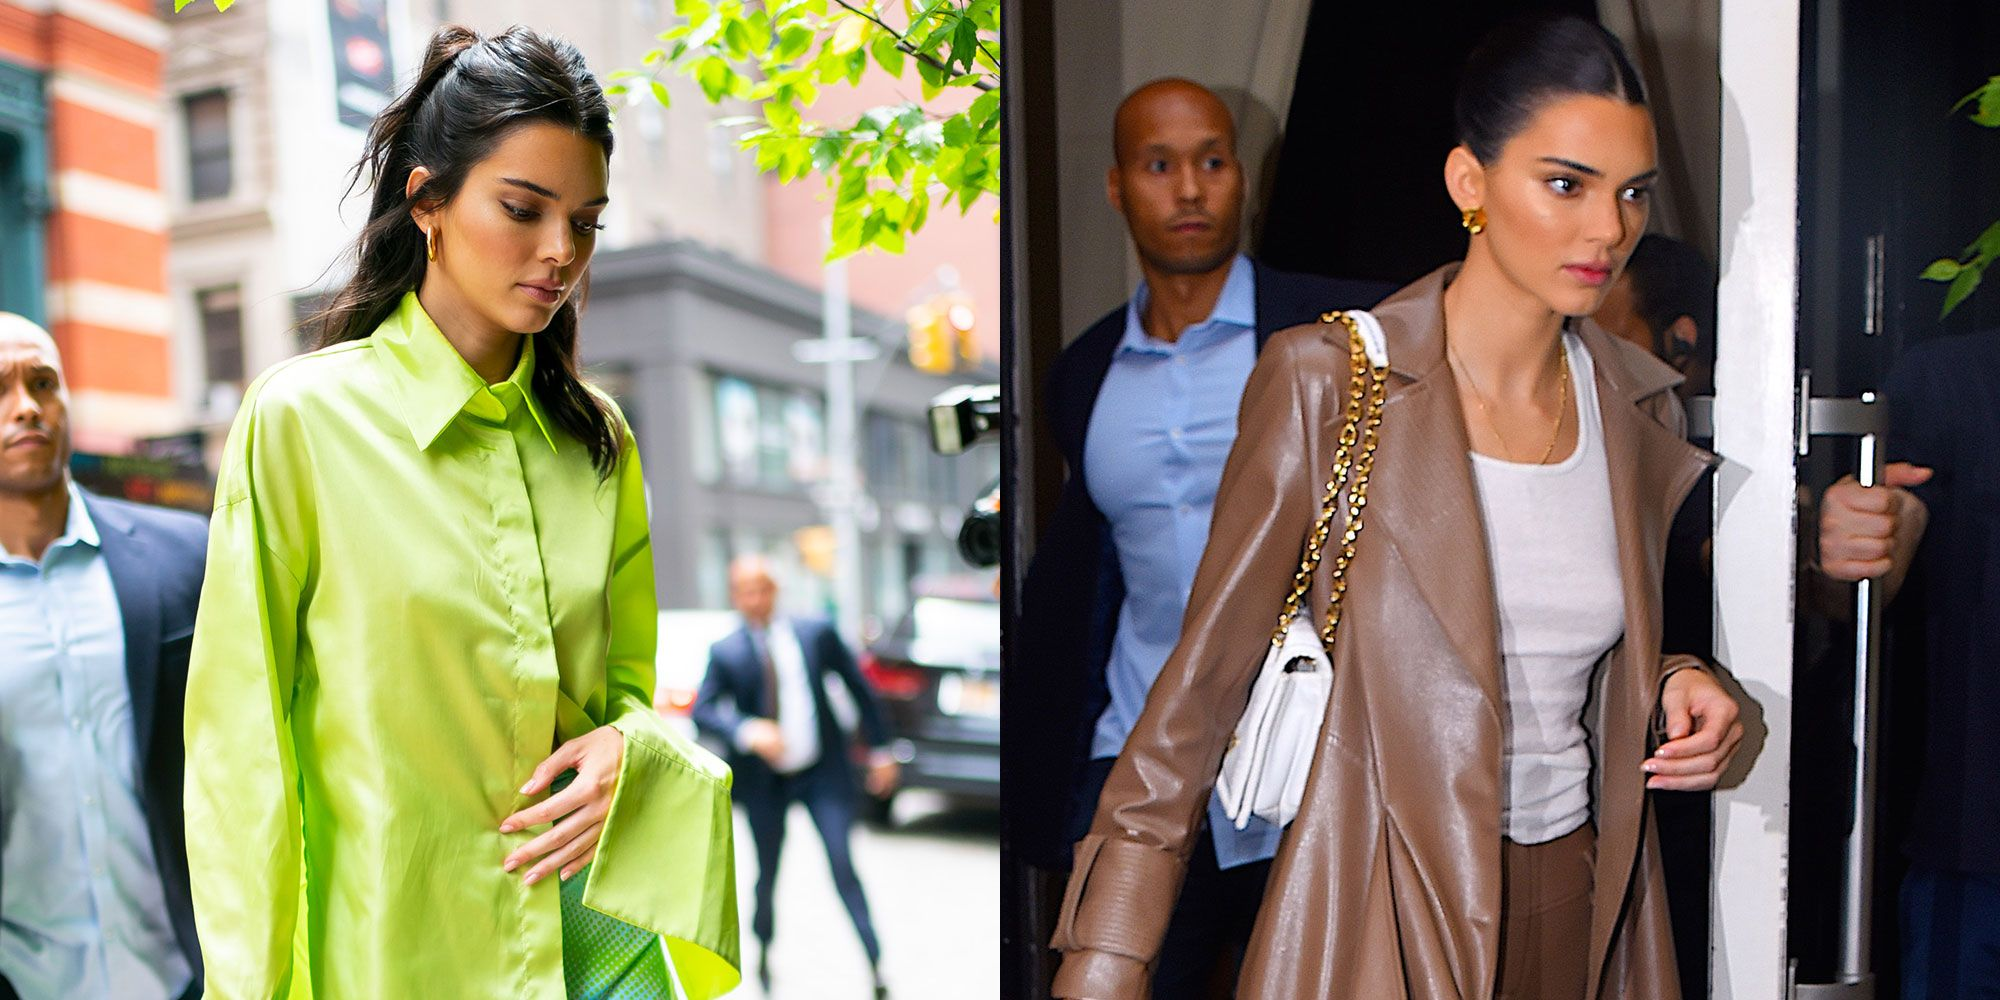 Kendall Jenner Wears Neon Green and All Brown Rainy Day